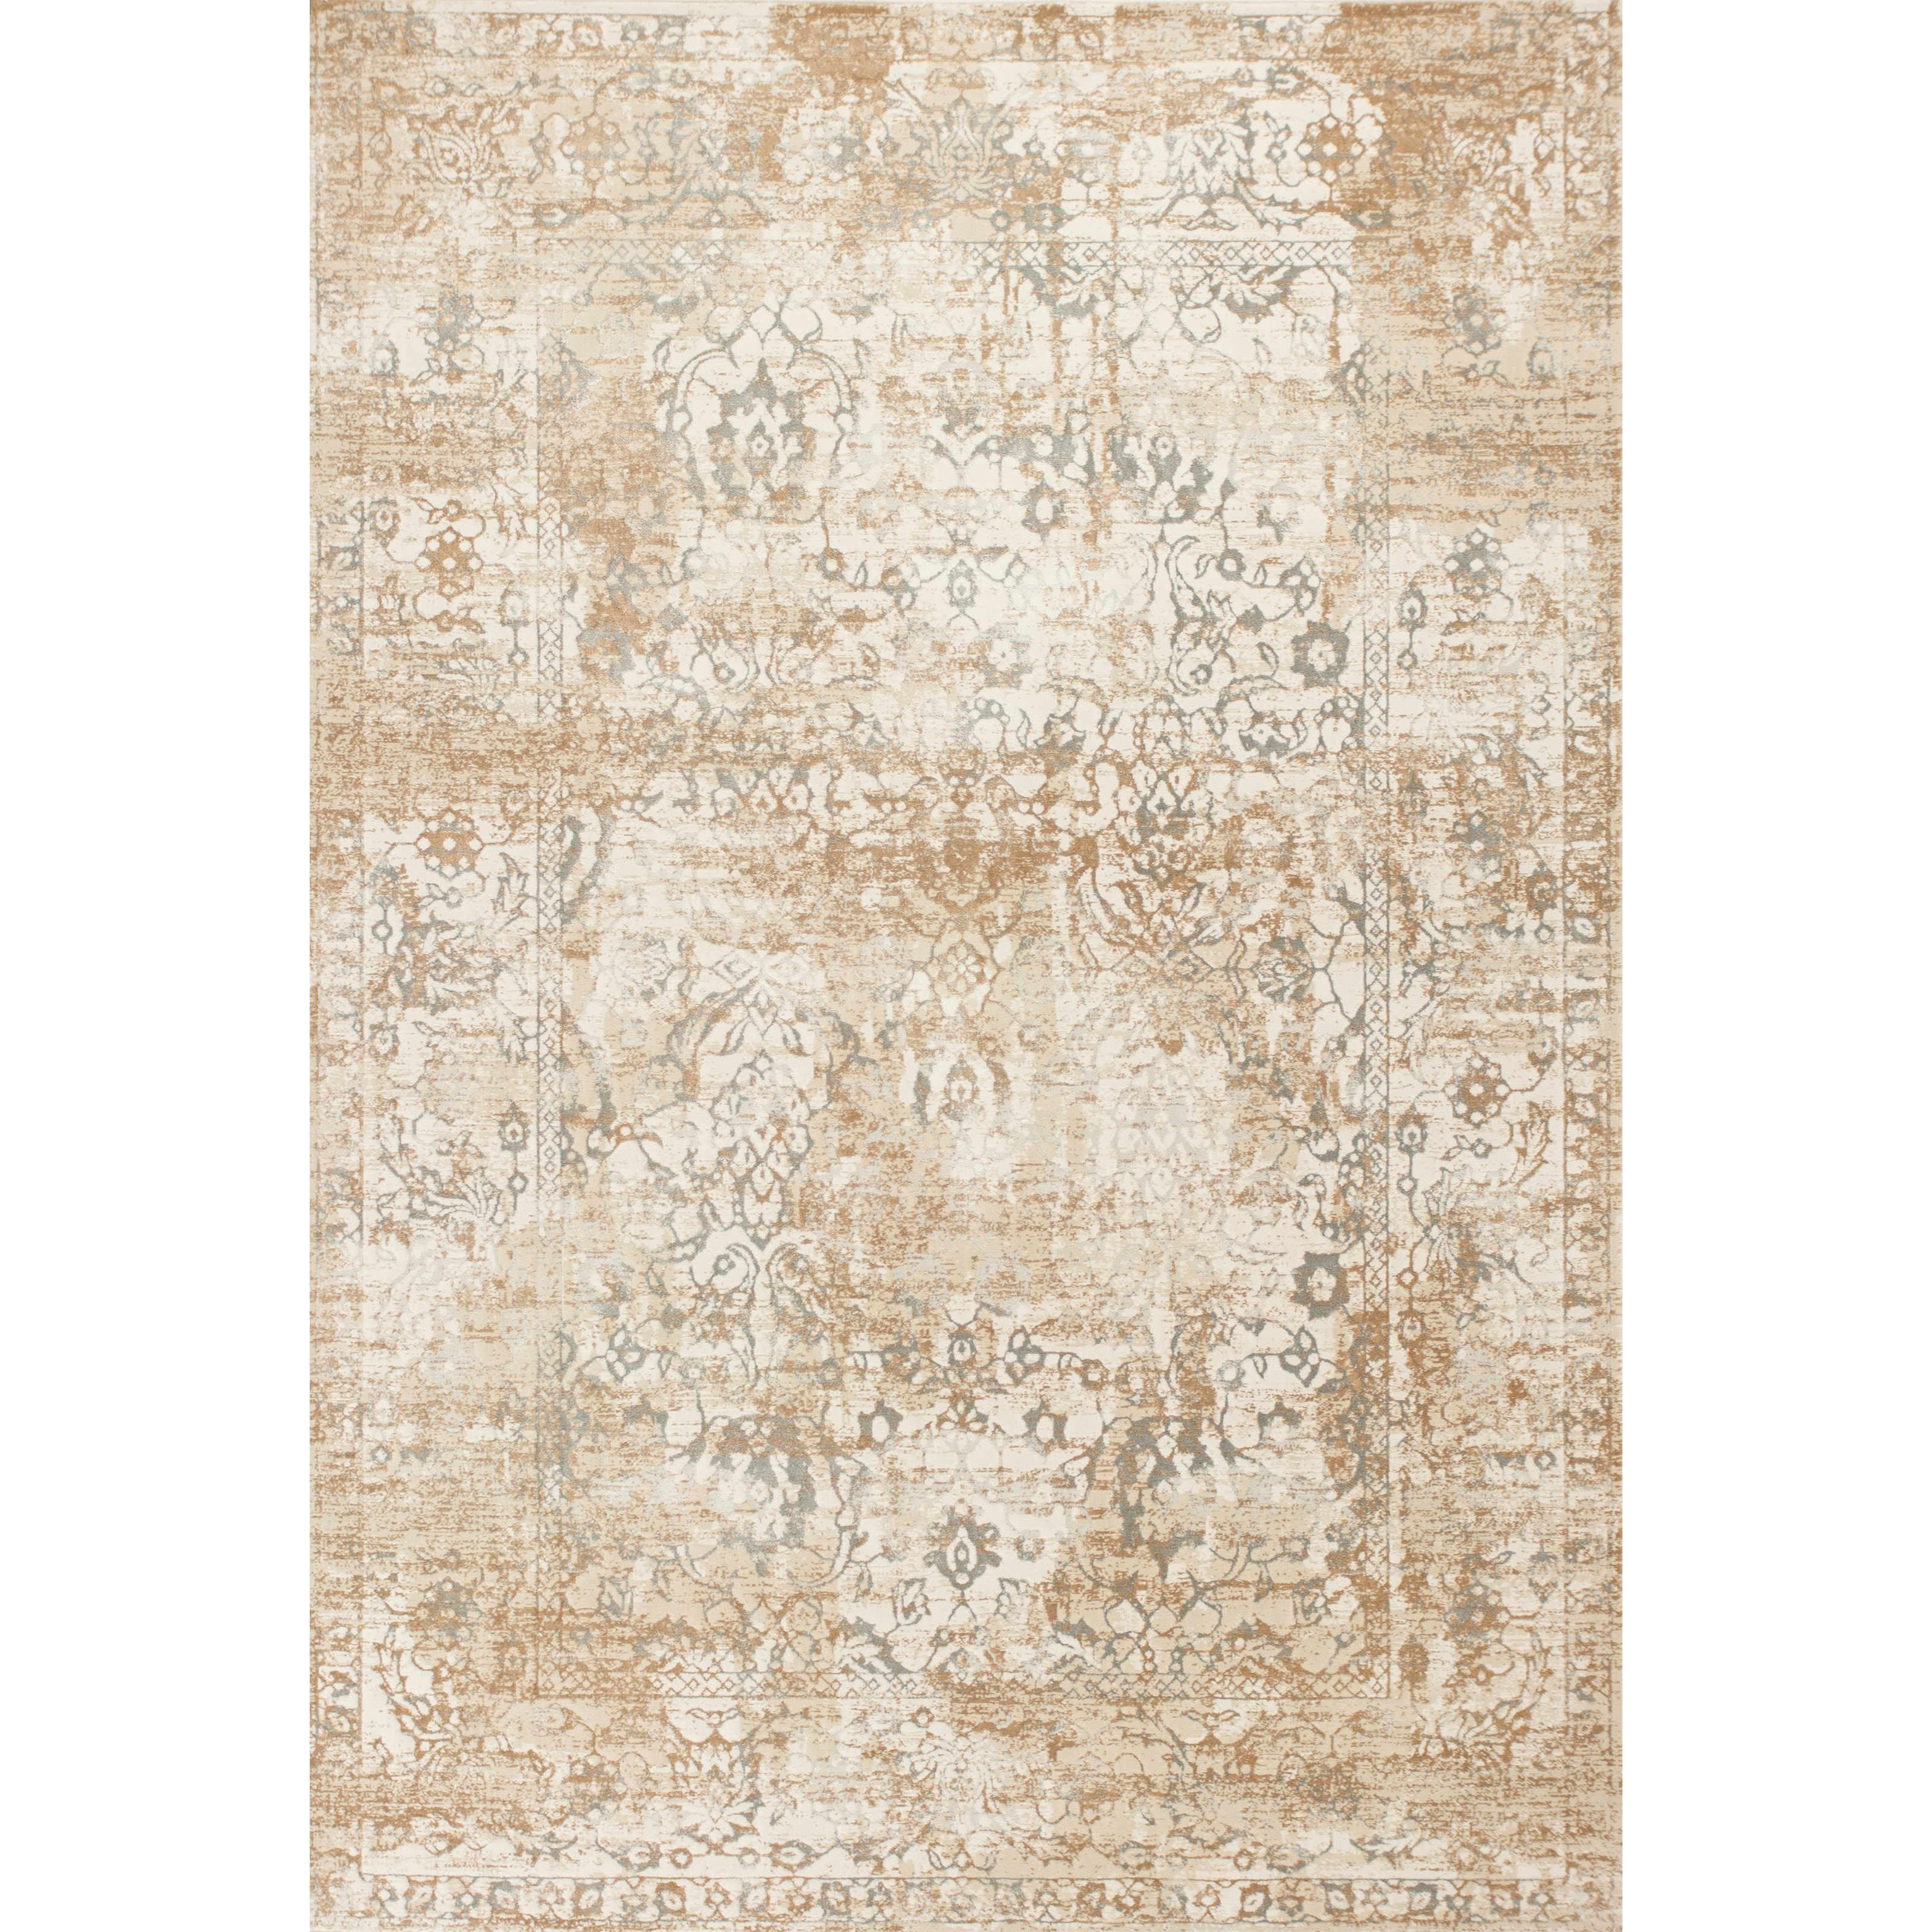 """Crete 3'3"""" X 4'7"""" Beige Illusion Area Rug by Kas at Darvin Furniture"""